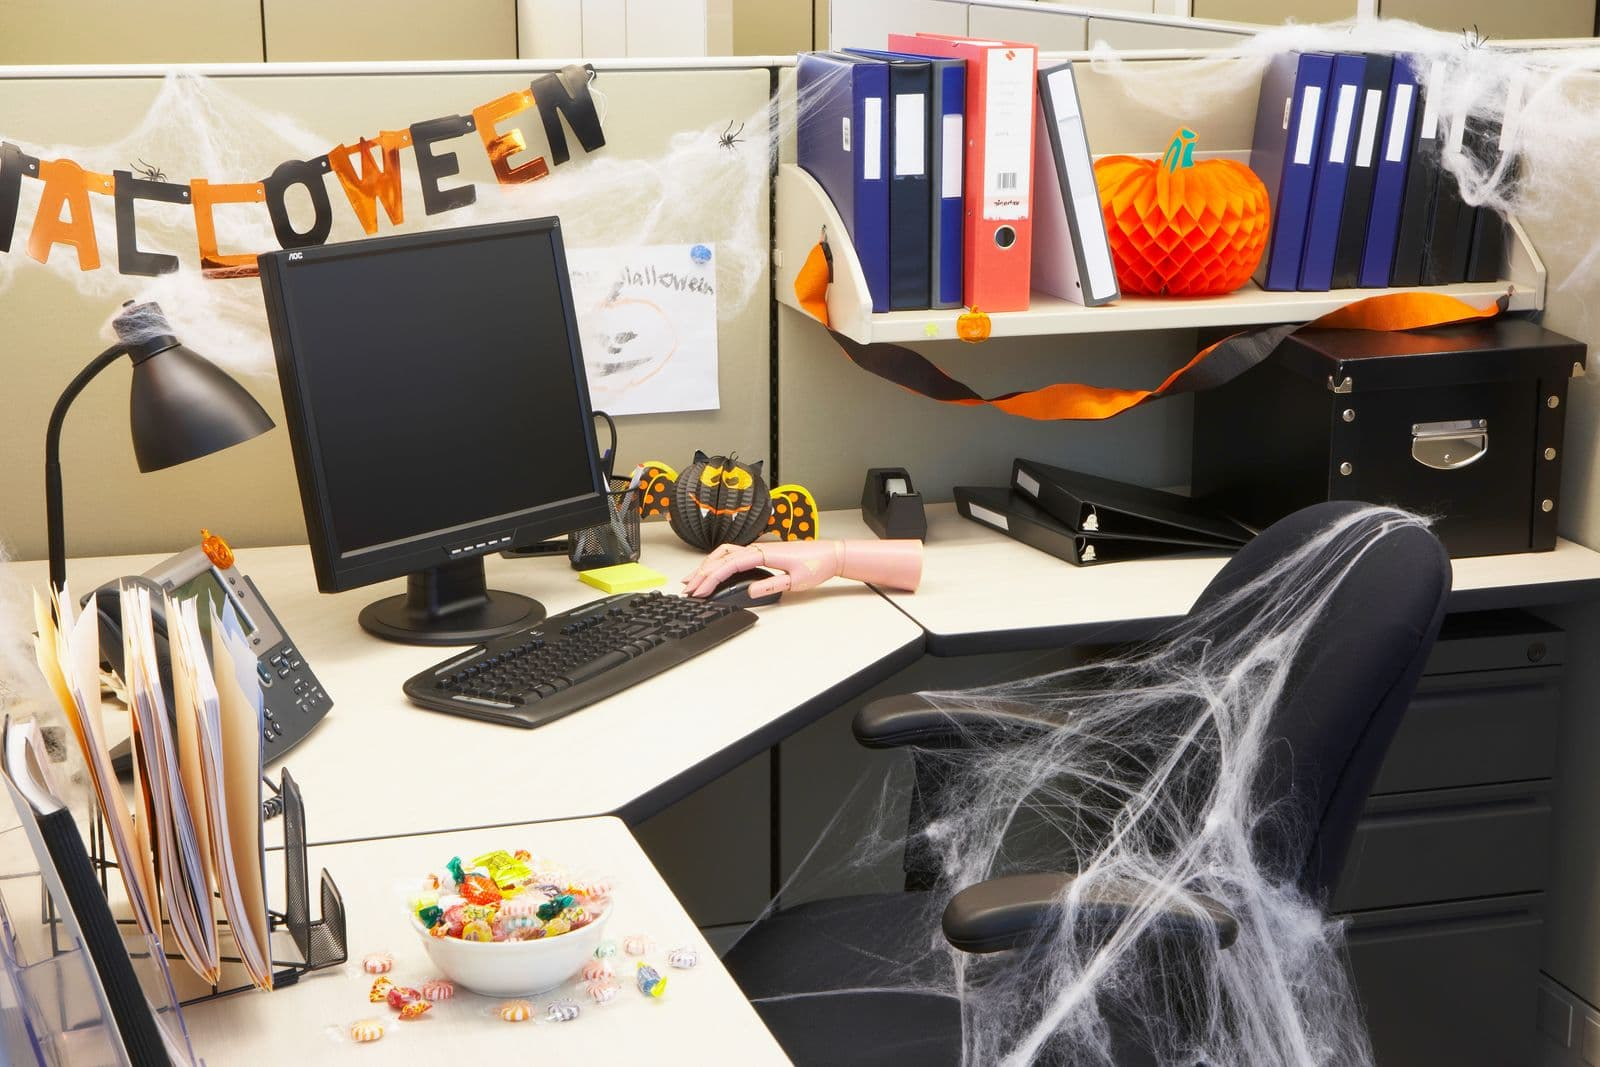 Time to Play – Fun, Creative, and Stylish Halloween Decorating Ideas for the Office